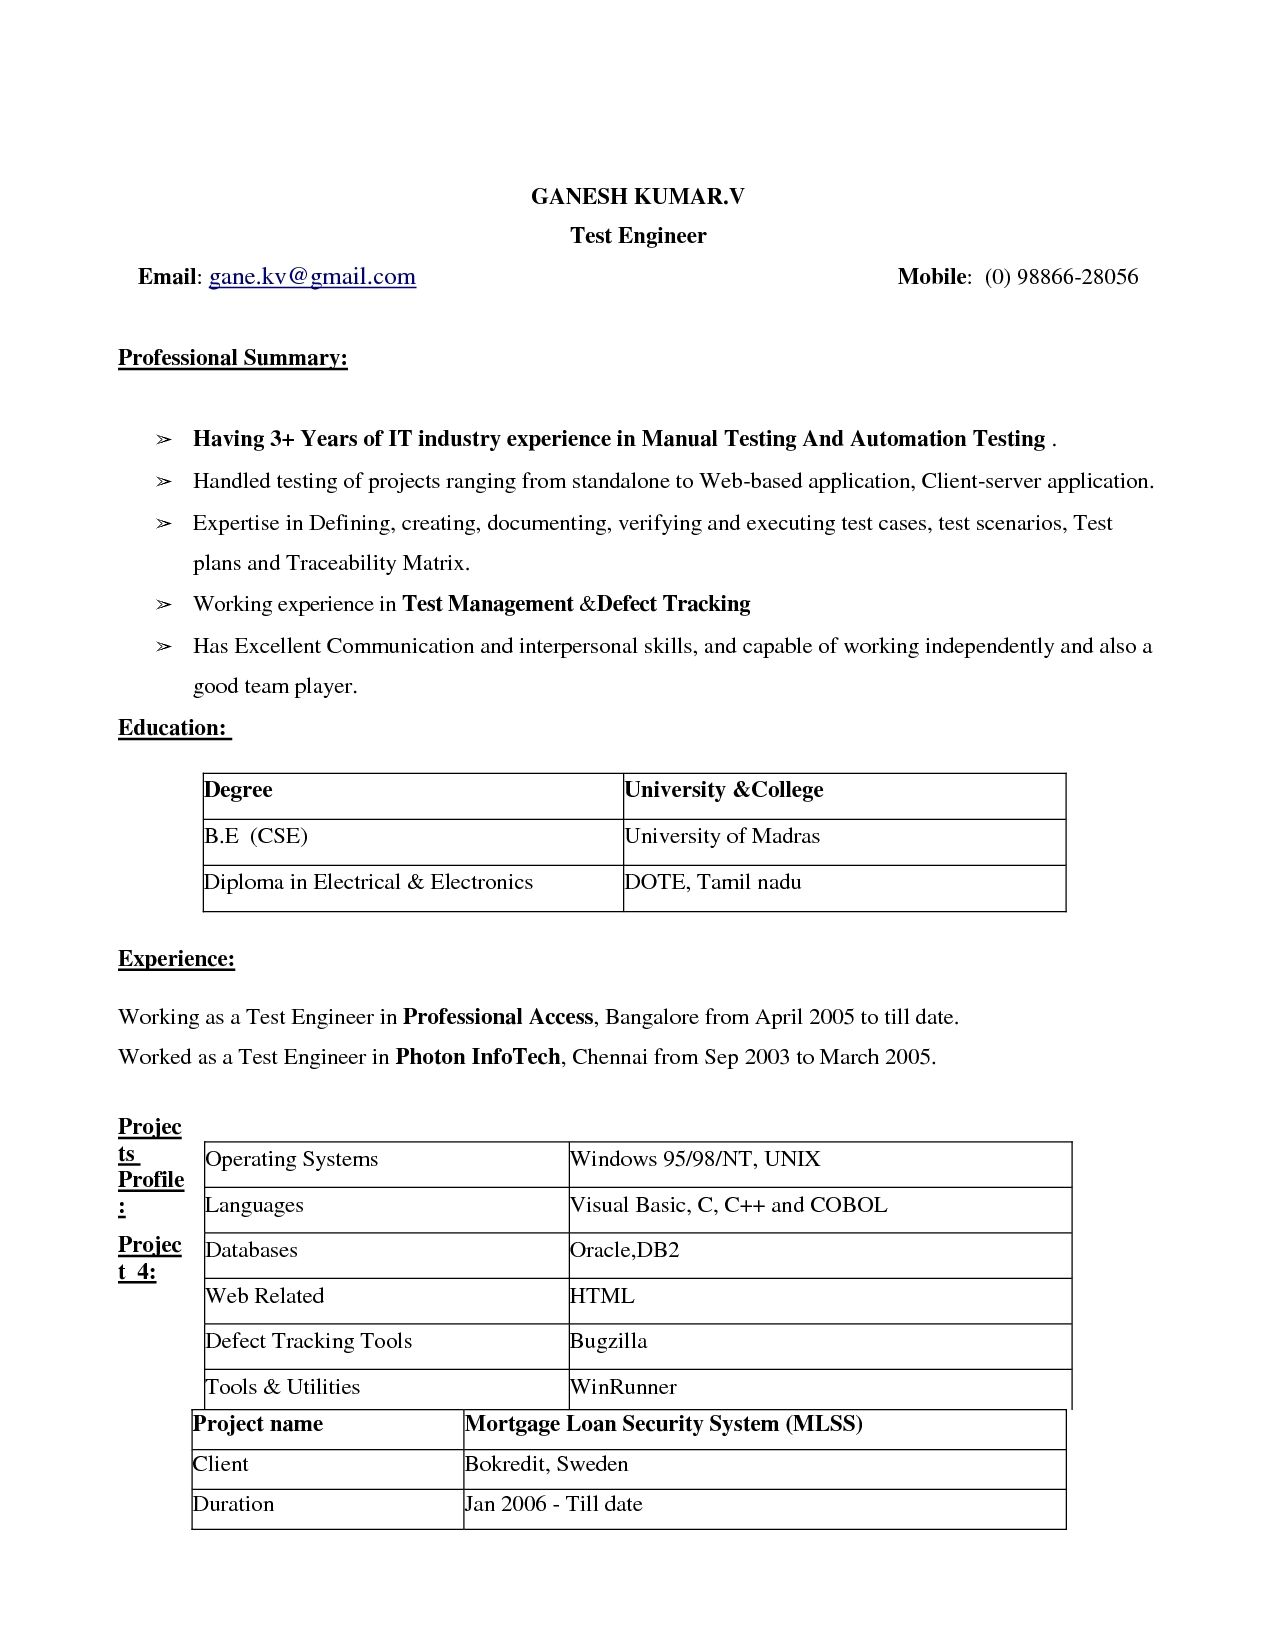 resume formats in ms word 9021eaaae best ms word resume format